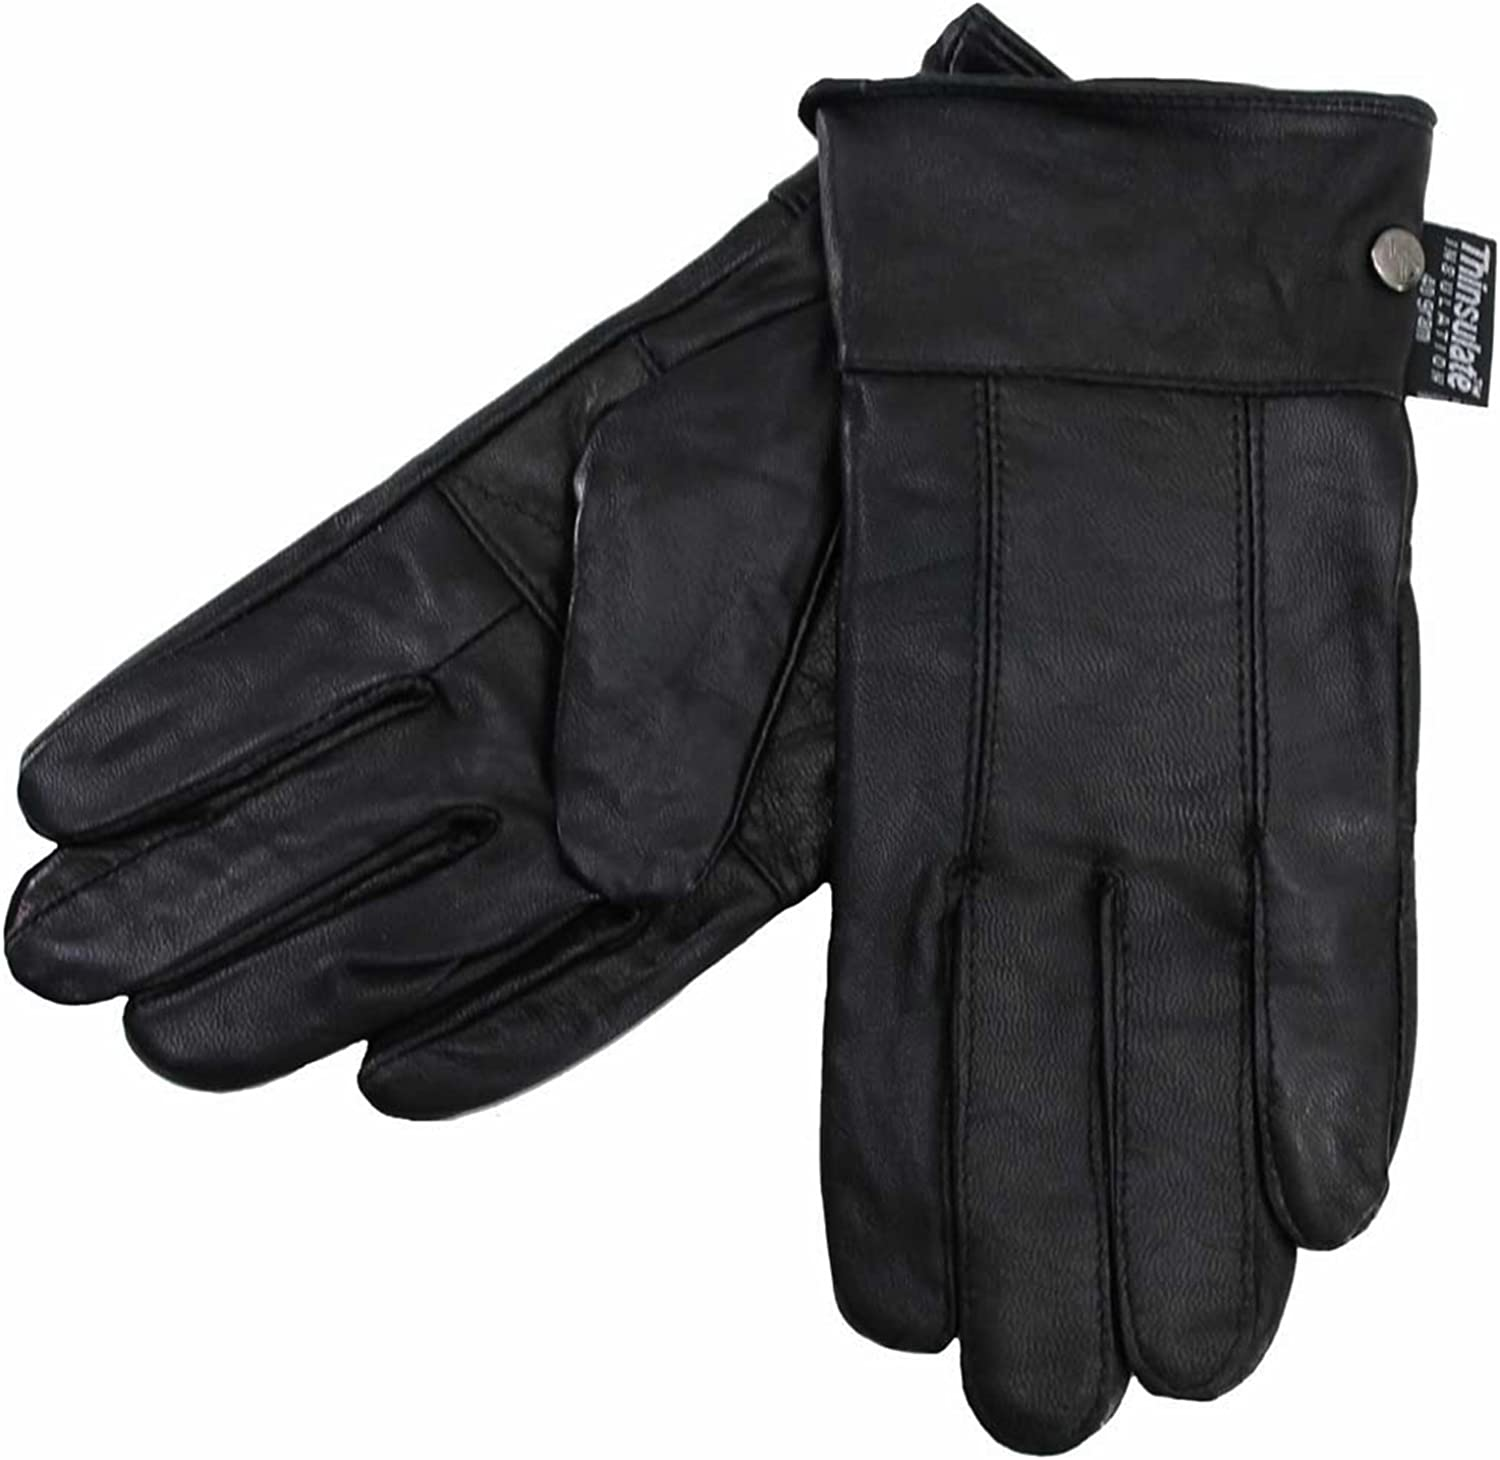 Black Soft Leather Womens Winter 5 ☆ very popular 3M Insulated Gloves Special price for a limited time